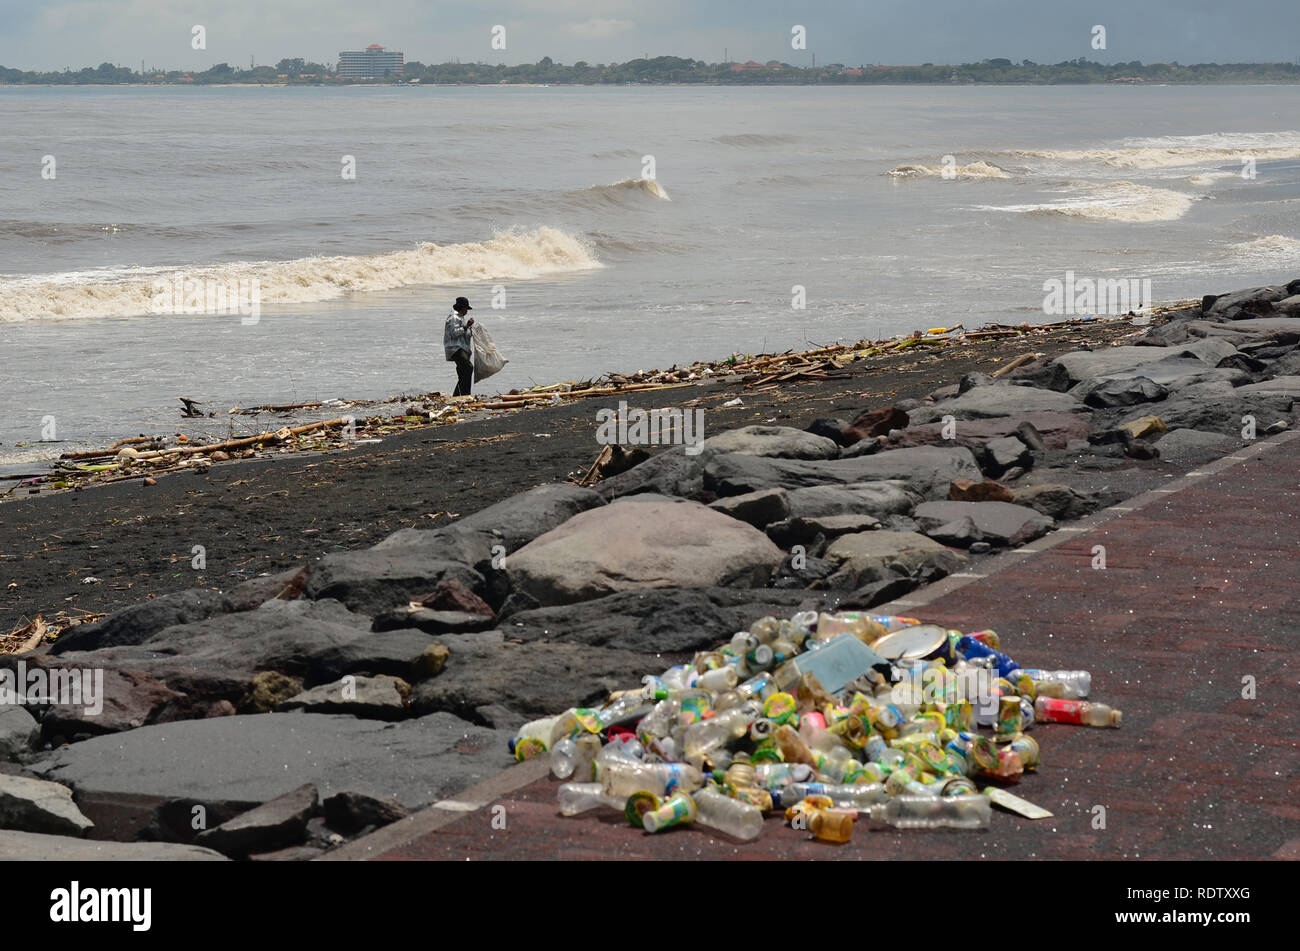 People Collects Plastic Bottles on The Polluted Coast - Stock Image